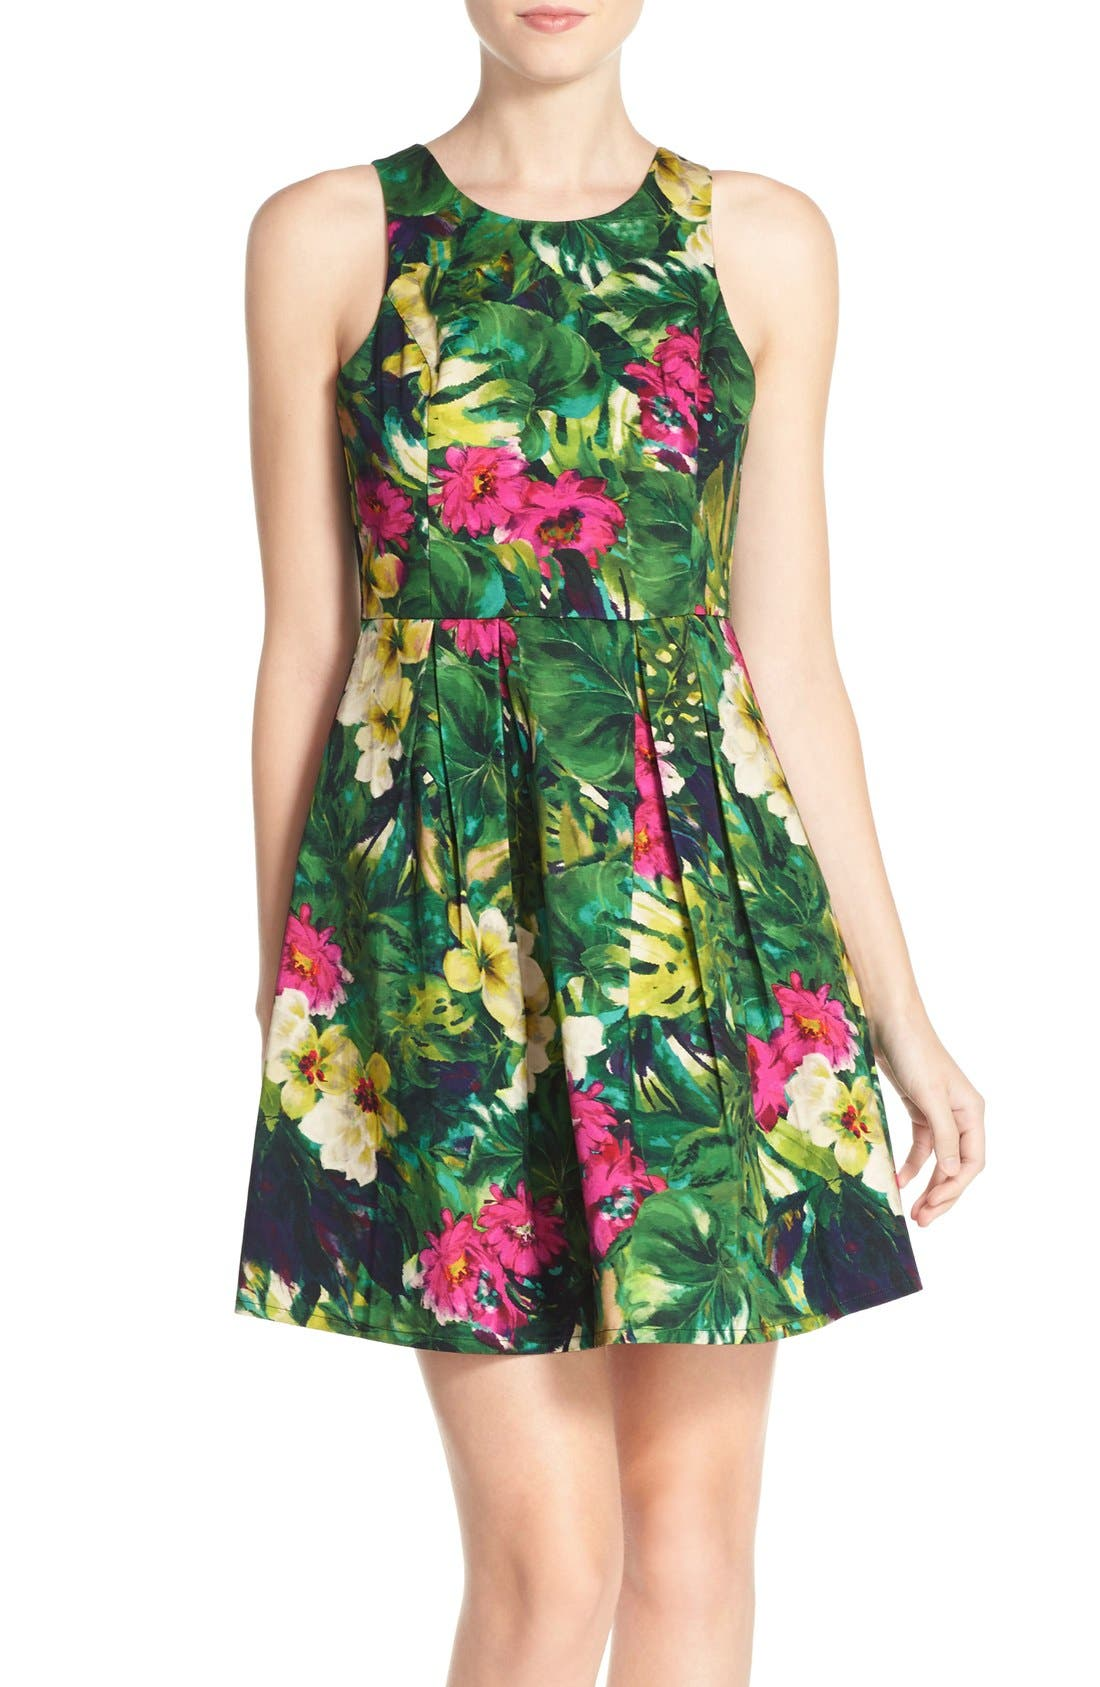 Main Image - Felicity & Coco Floral Print Fit & Flare Dress (Regular & Petite) (Nordstrom Exclusive)